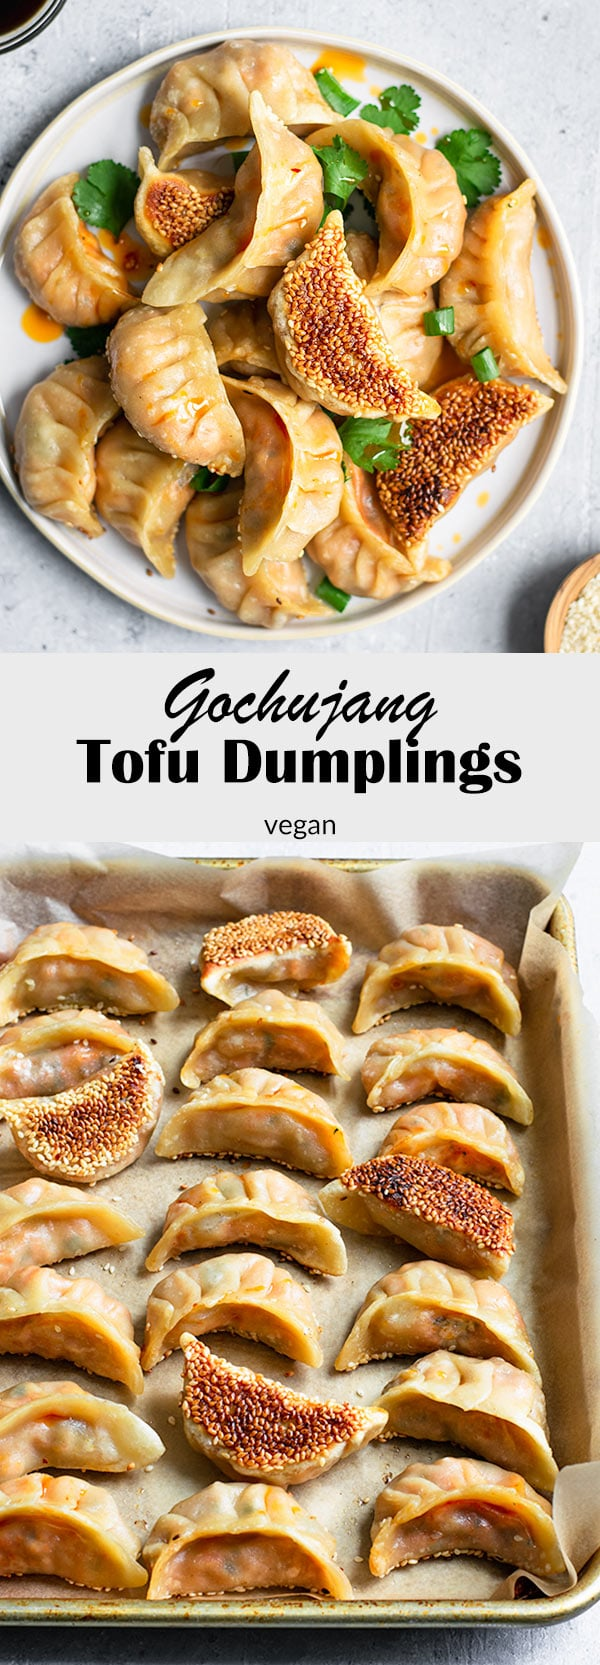 These delicious gochujang tofu dumplings have a spicy Korean-inspired filling and make a great snack, appetizer, or meal! Their crispy sesame seed coated bottom makes them extra special! #thecuriouschickpea #vegan #vegetarian #Korean #dumpling #potsticker